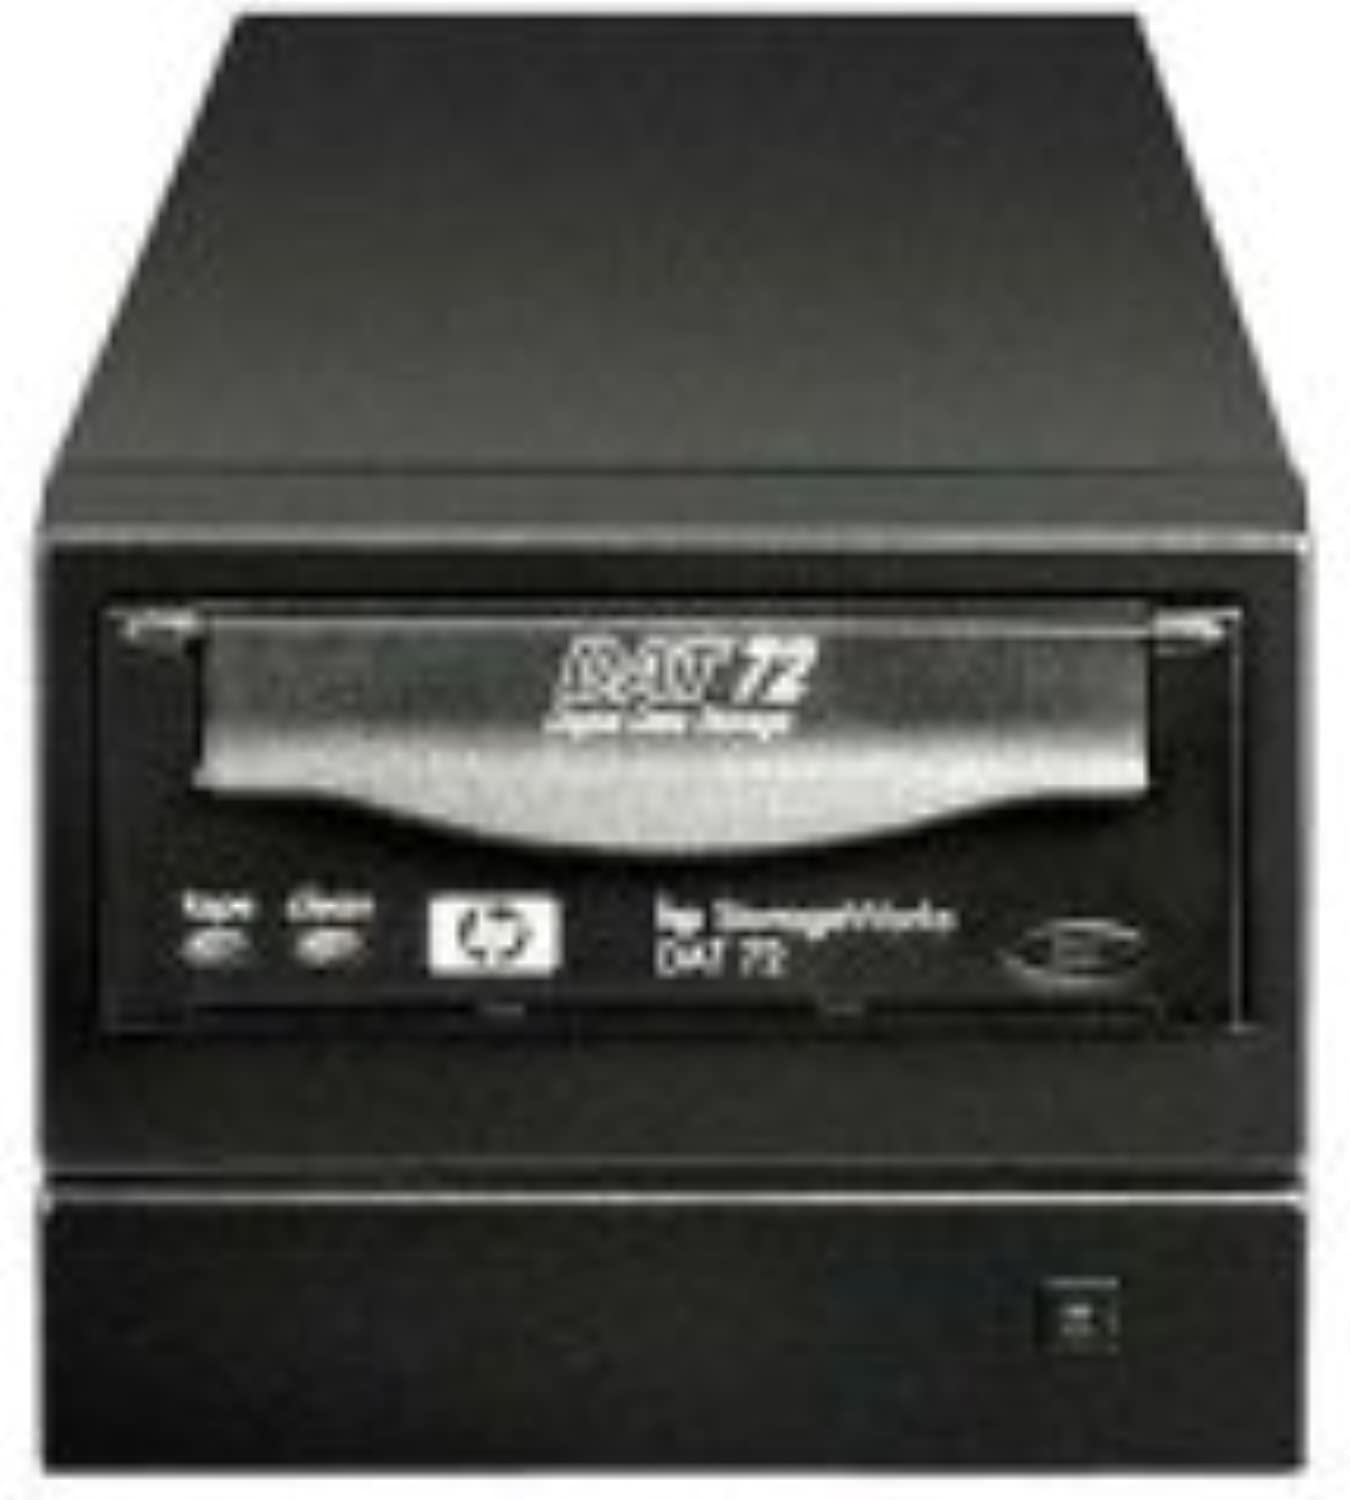 HP Q1525A 36 72GB DAT72i DDS-5 4mm LVD SCSI, Refurbished to Factory Specifications